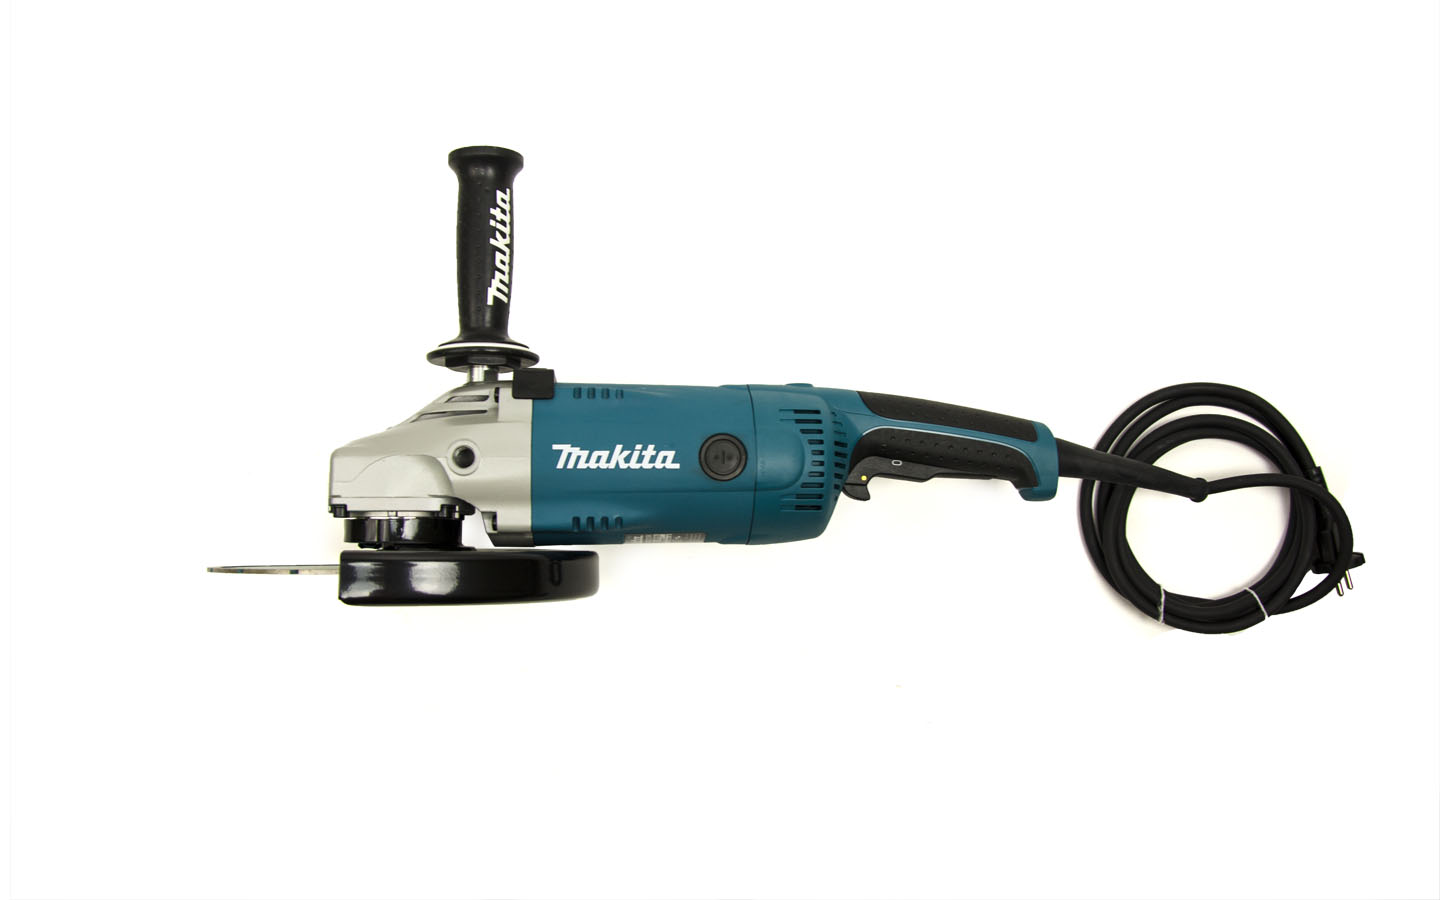 Makita Winkelschleifer(230mm) GA 9020 RFK 3